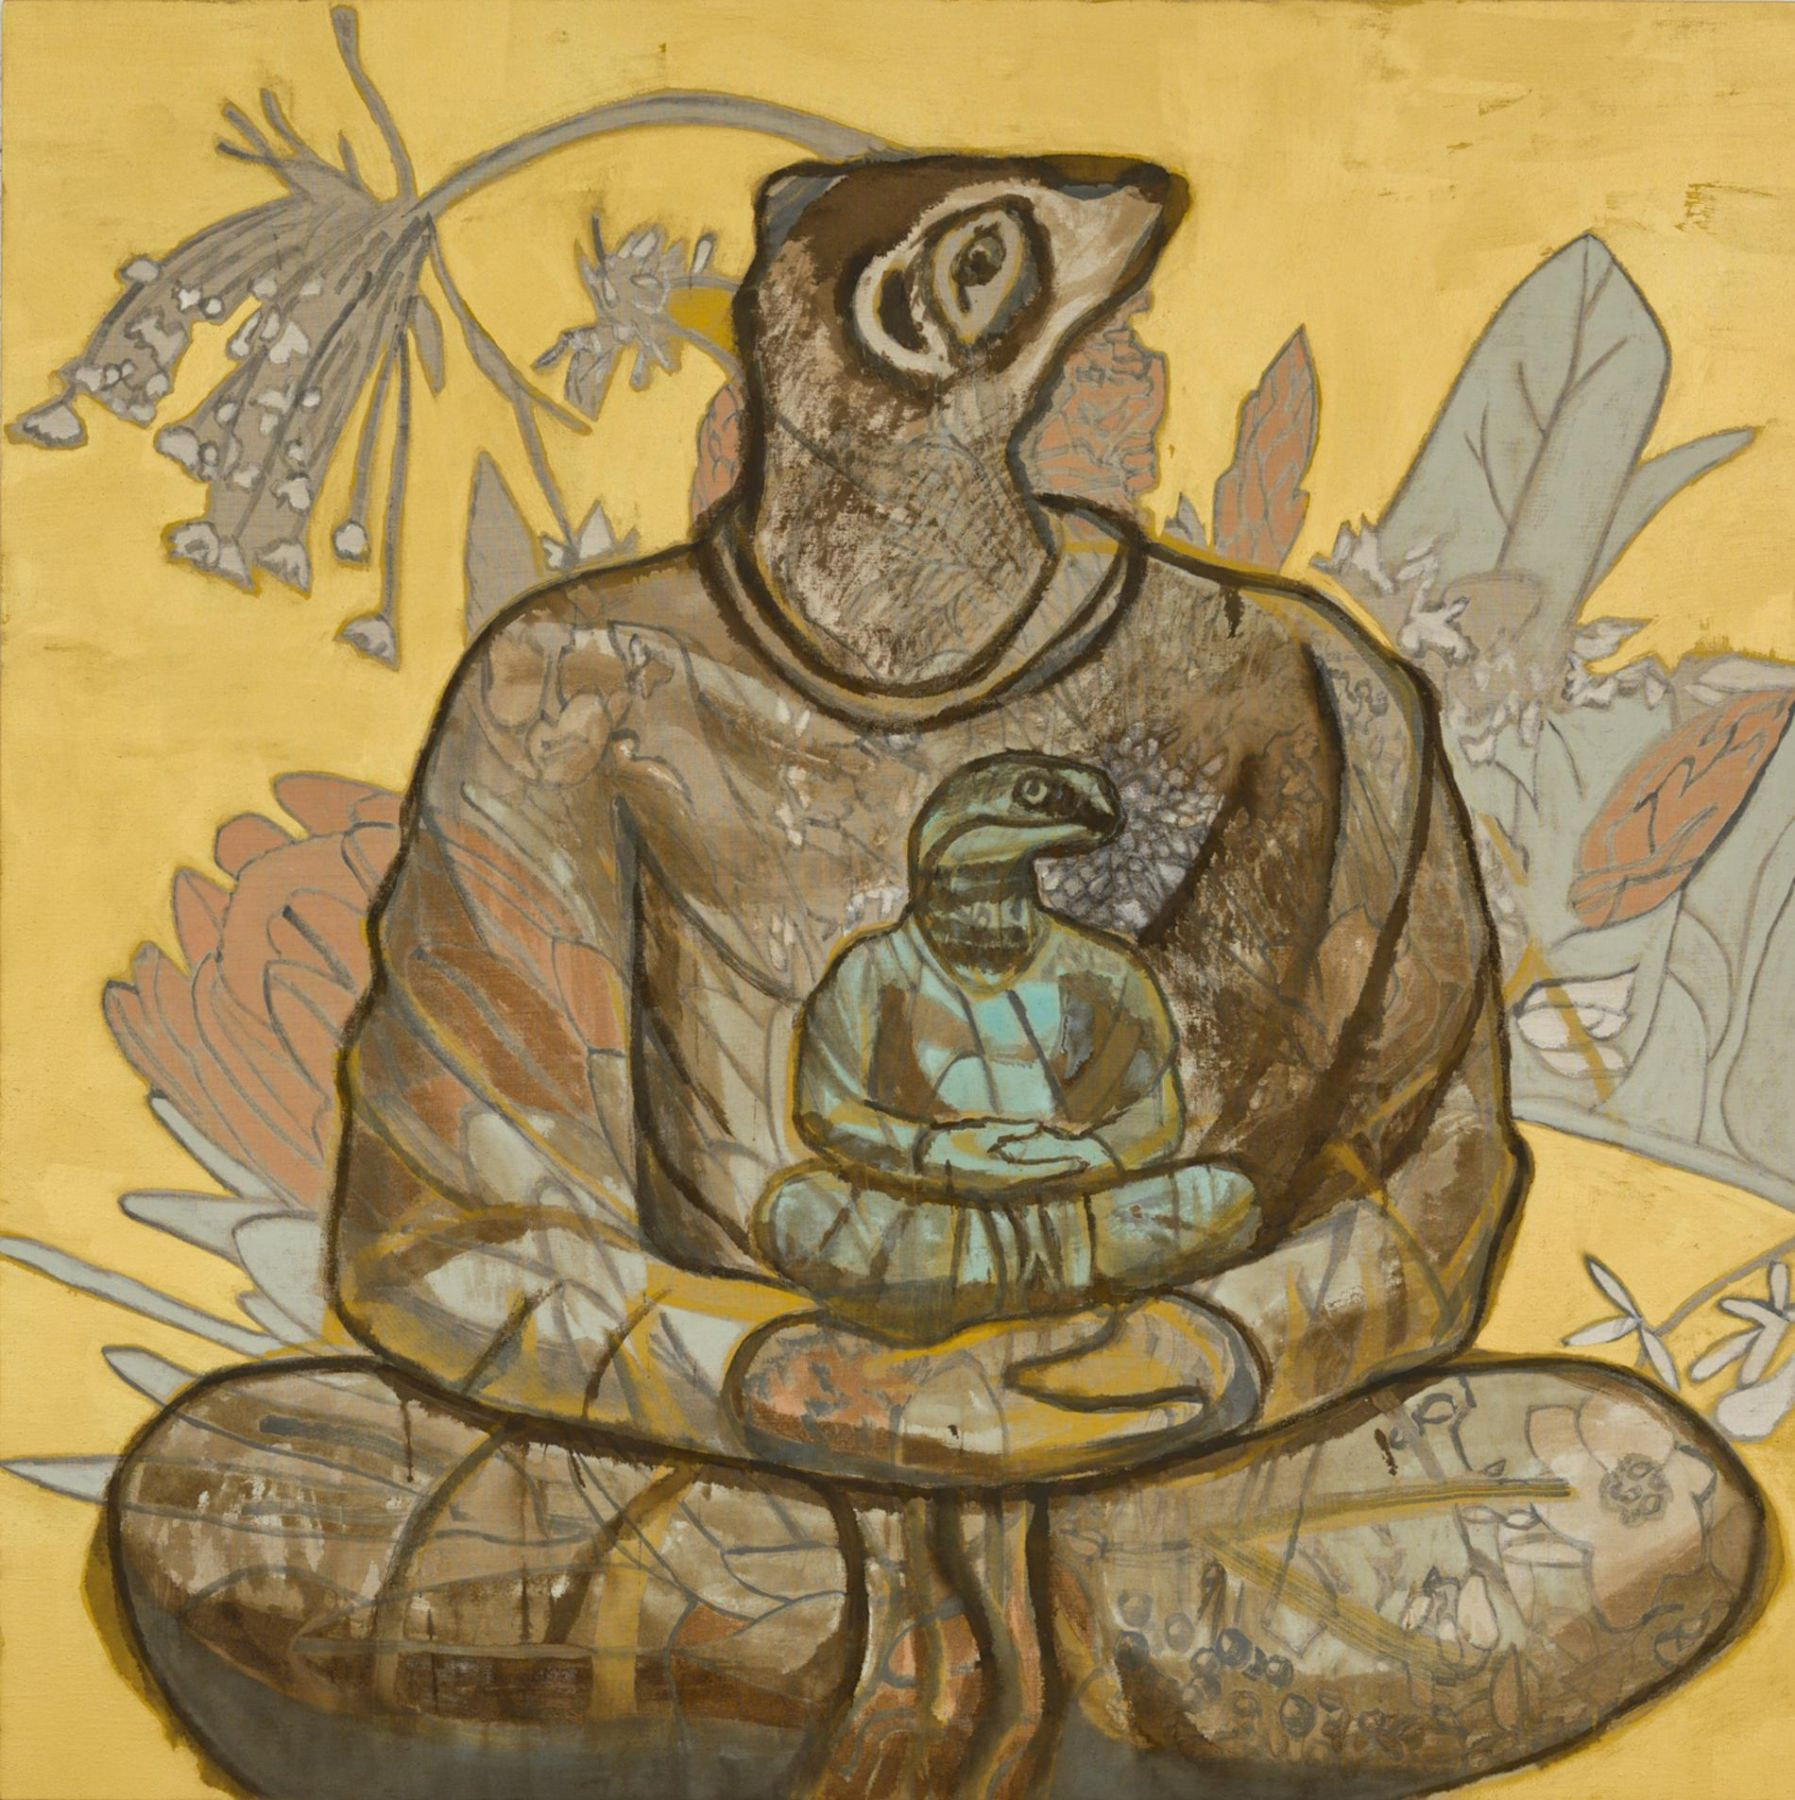 , FRANCESCO CLEMENTE Dilemma II, 2013 Pigment on linen 72 x 72 in. (182.9 x 182.9 cm)